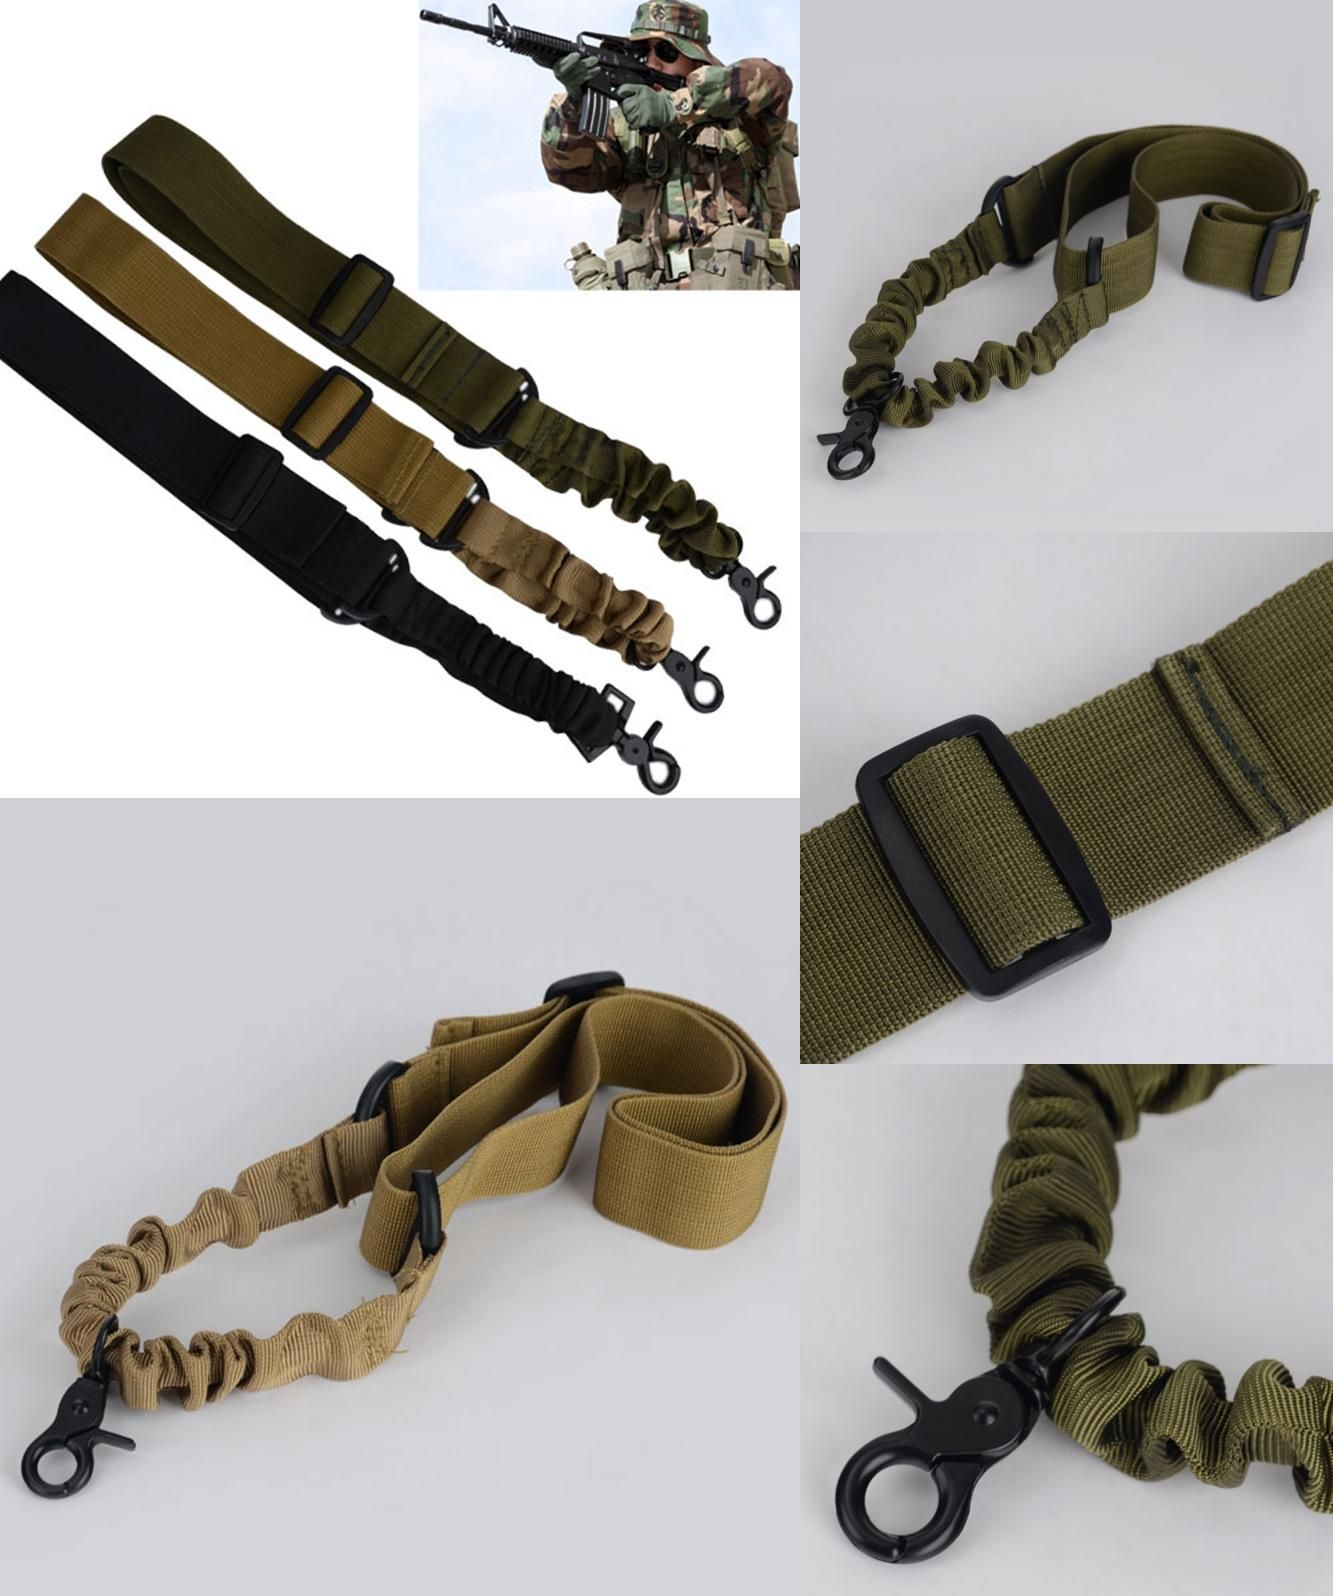 Adjustable 1000D Nylon Airsoft Tactical Military Rifle Sling Strap Gun Rope